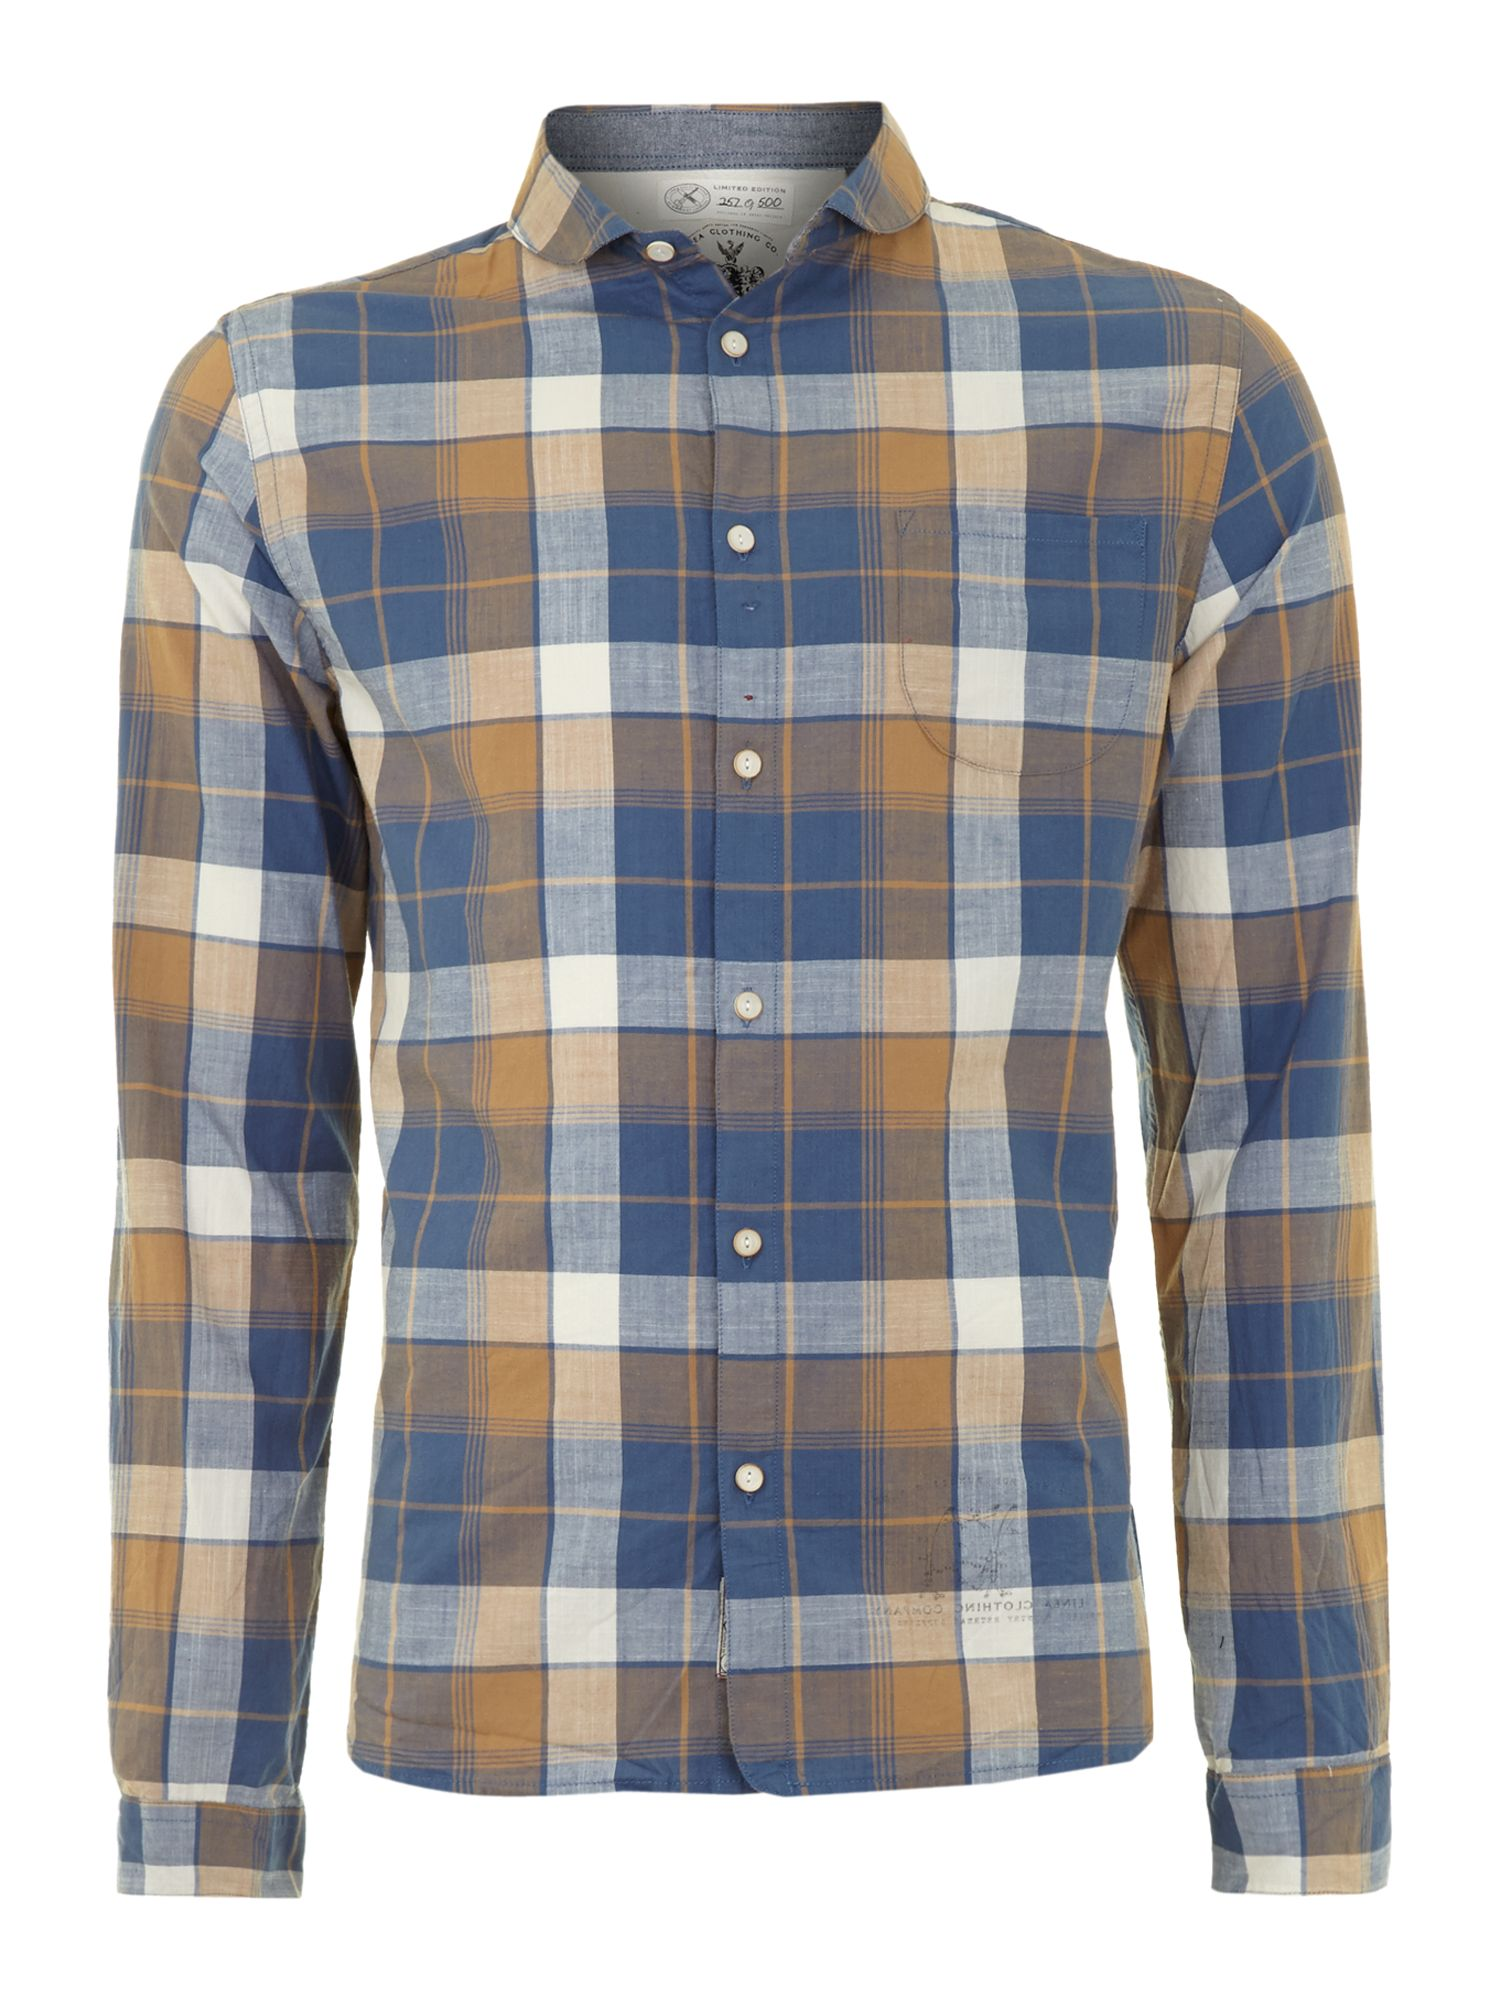 Moffat limited edition natural check shirt